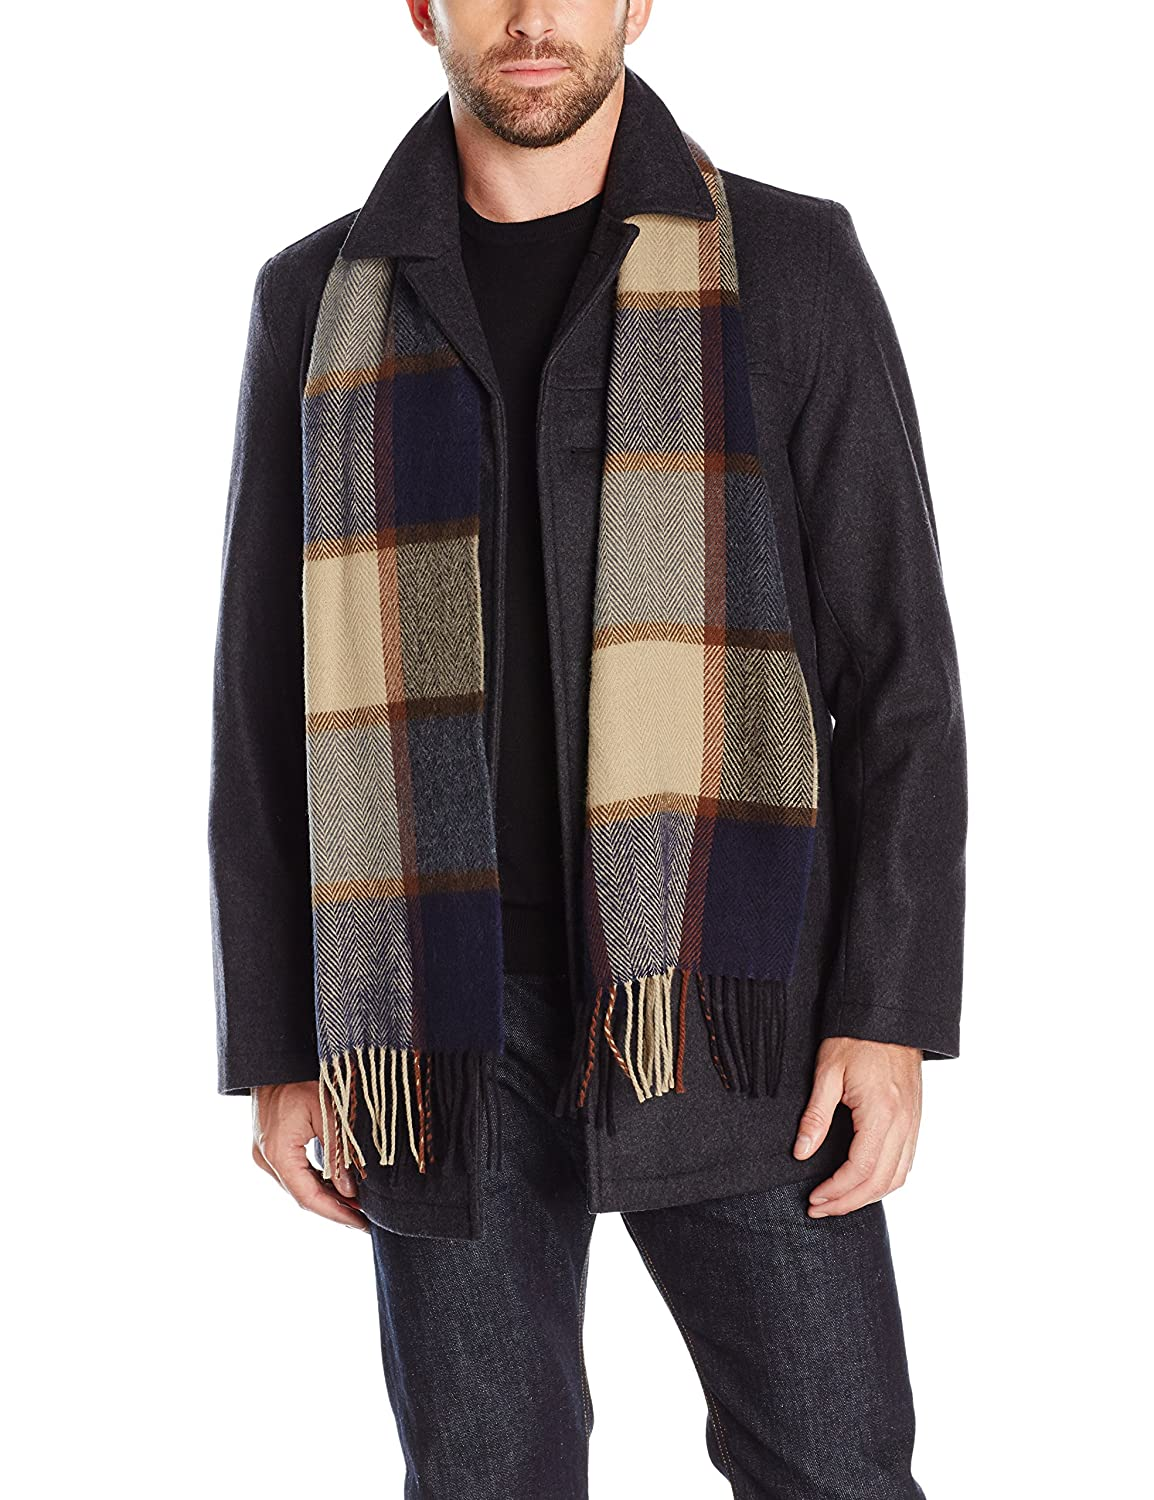 Tommy Hilfiger Mens Wool Melton Walking Coat with Attached Scarf